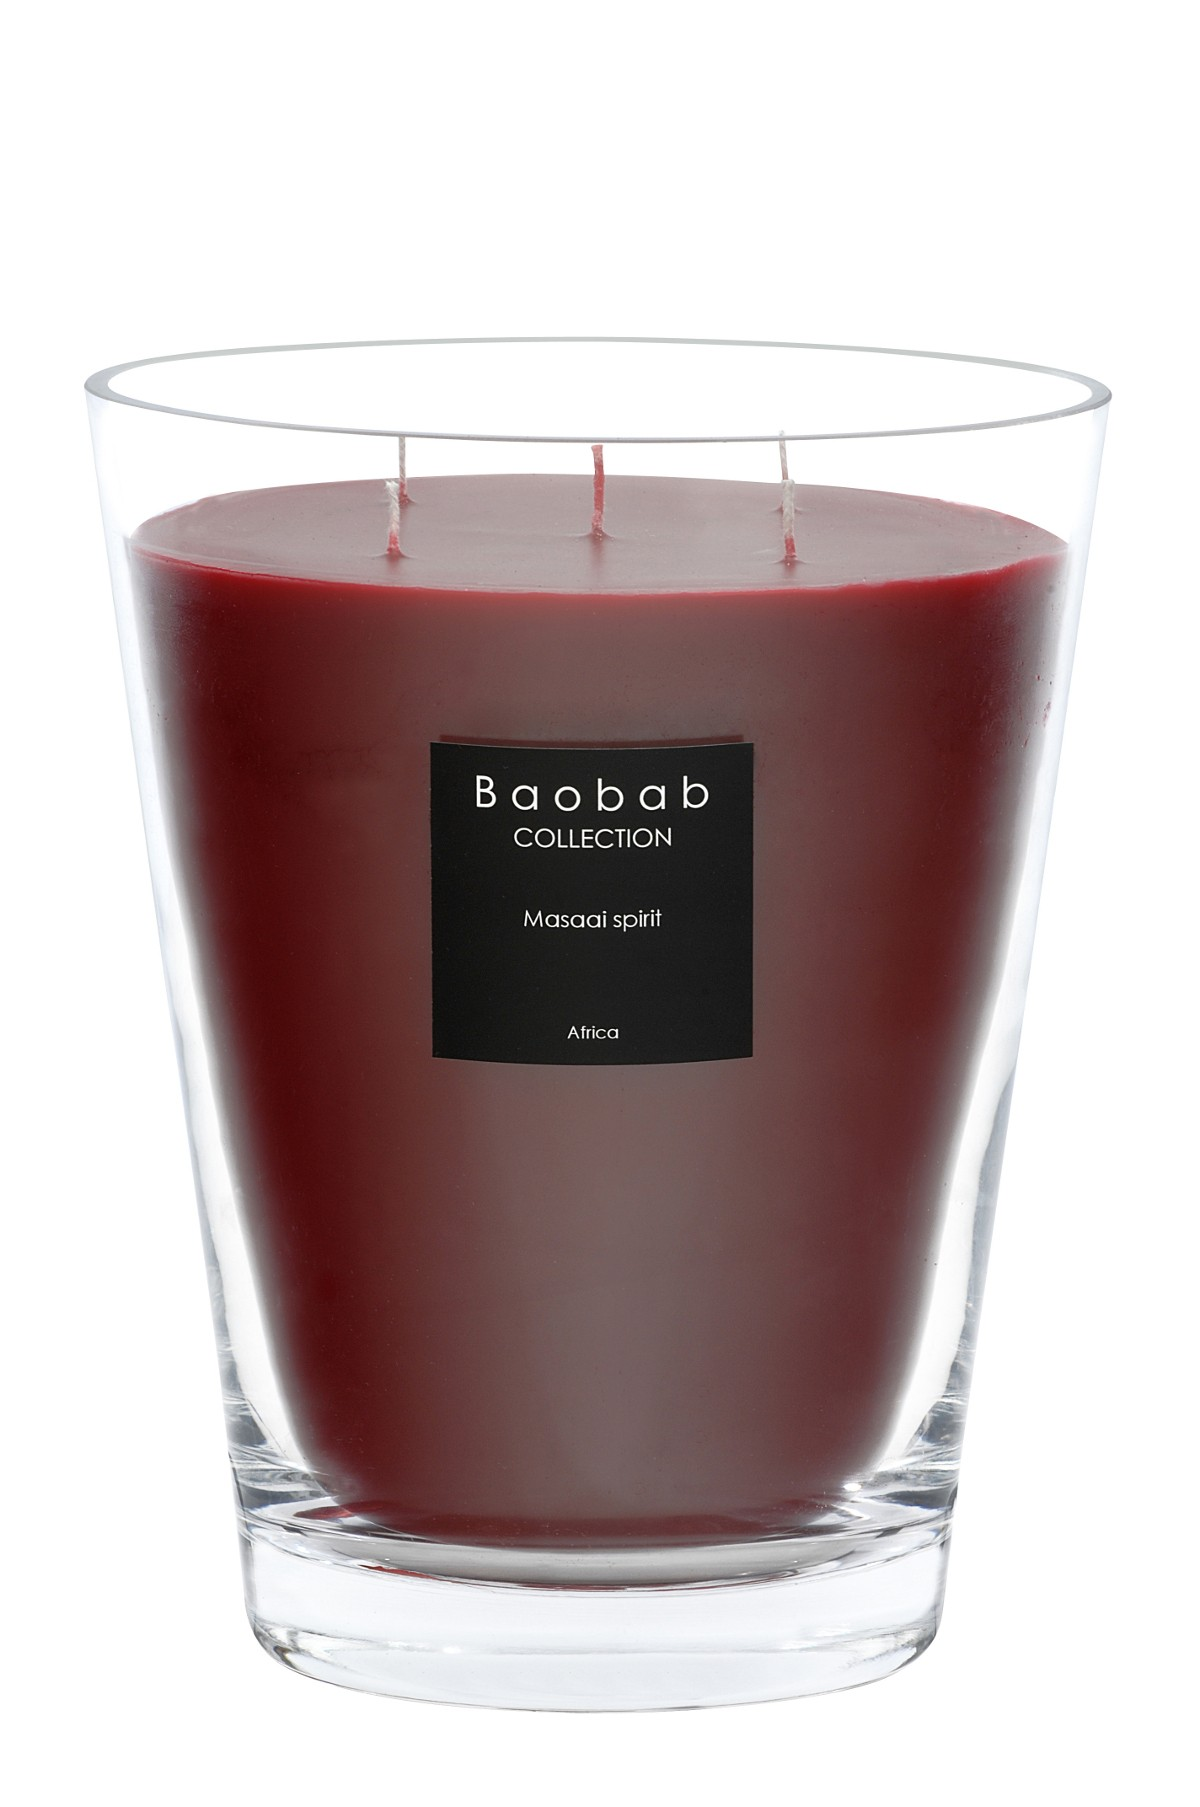 Bougie Baobab Paris Bougie Max 24 Masaai Spirit De Baobab Collection